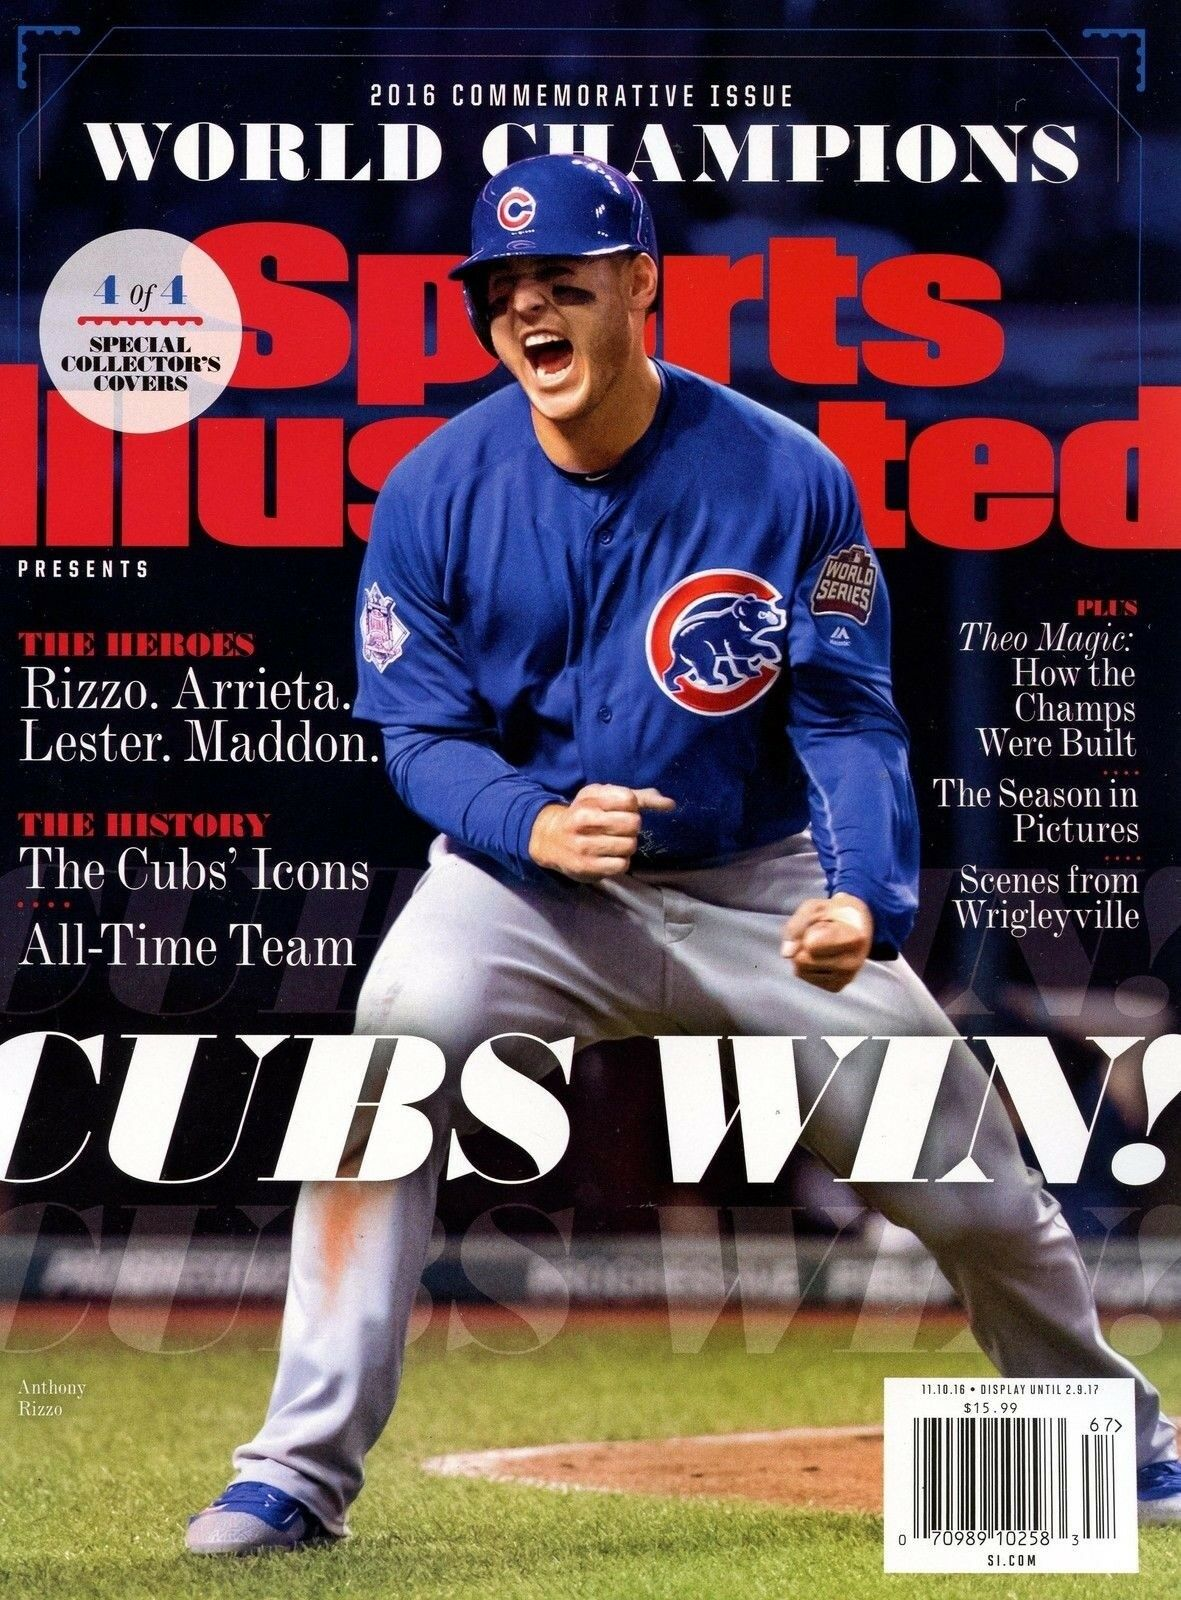 Sports Illustrated Magazine Commemorative 2016 Champions Cover 4 CHICAGO CUBS